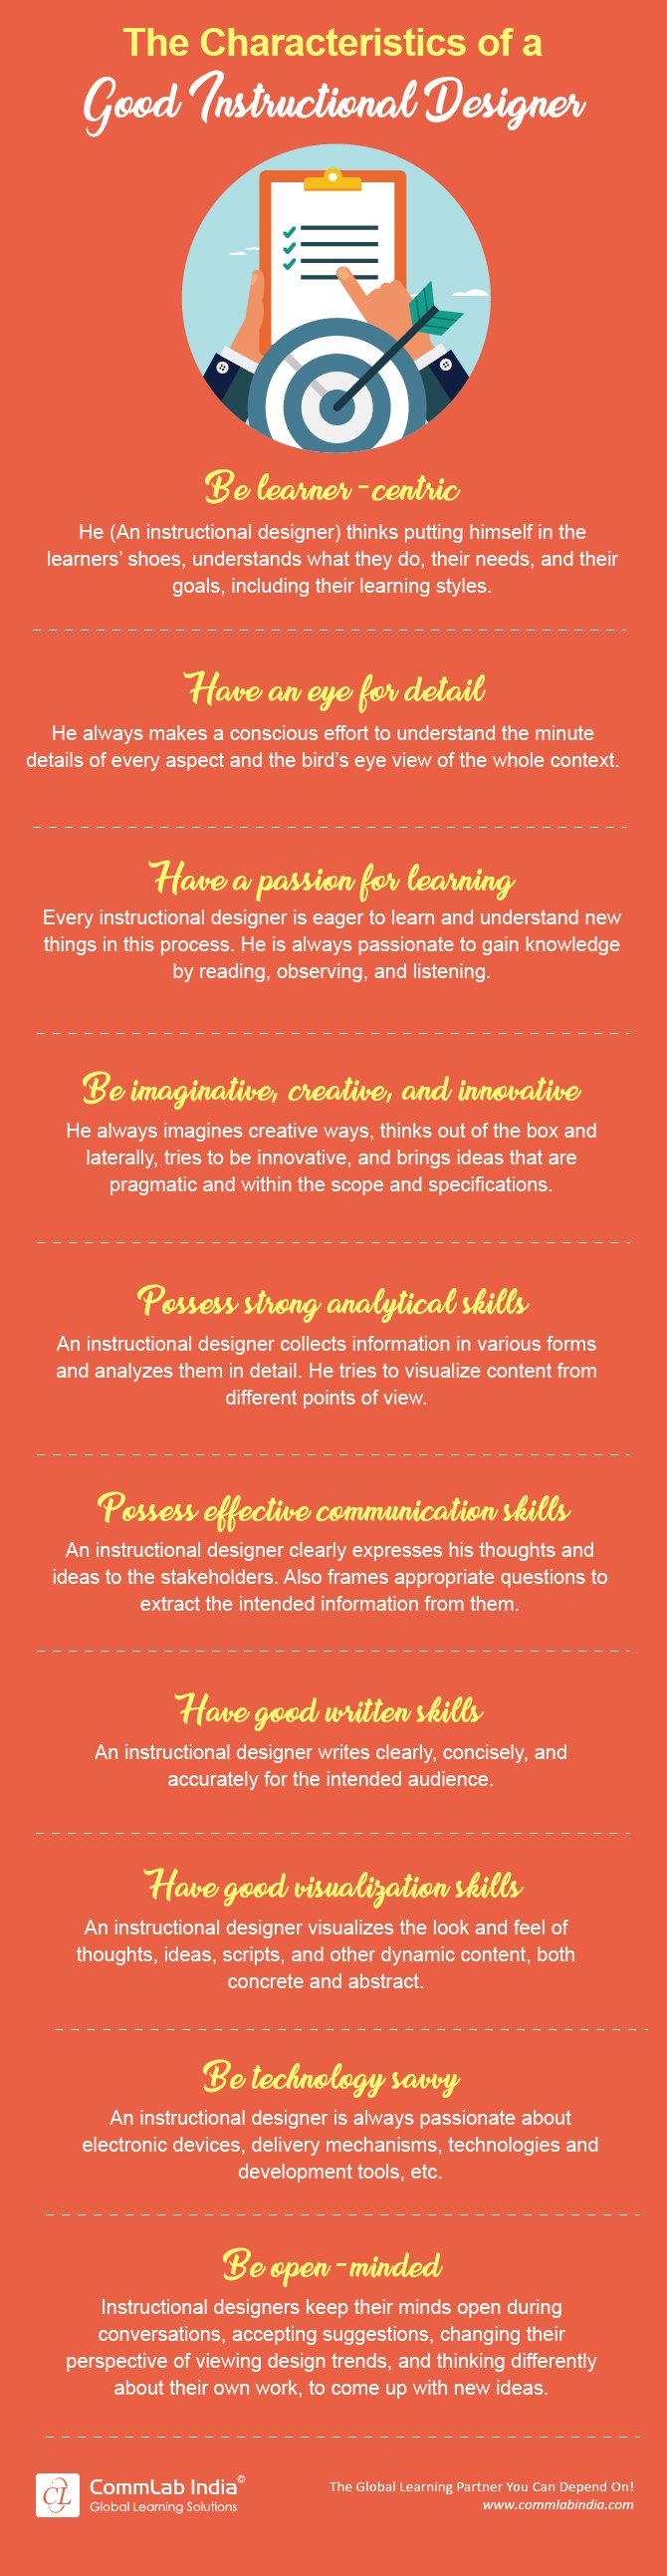 The Characteristics of a Good Instructional Designer [Infographic]